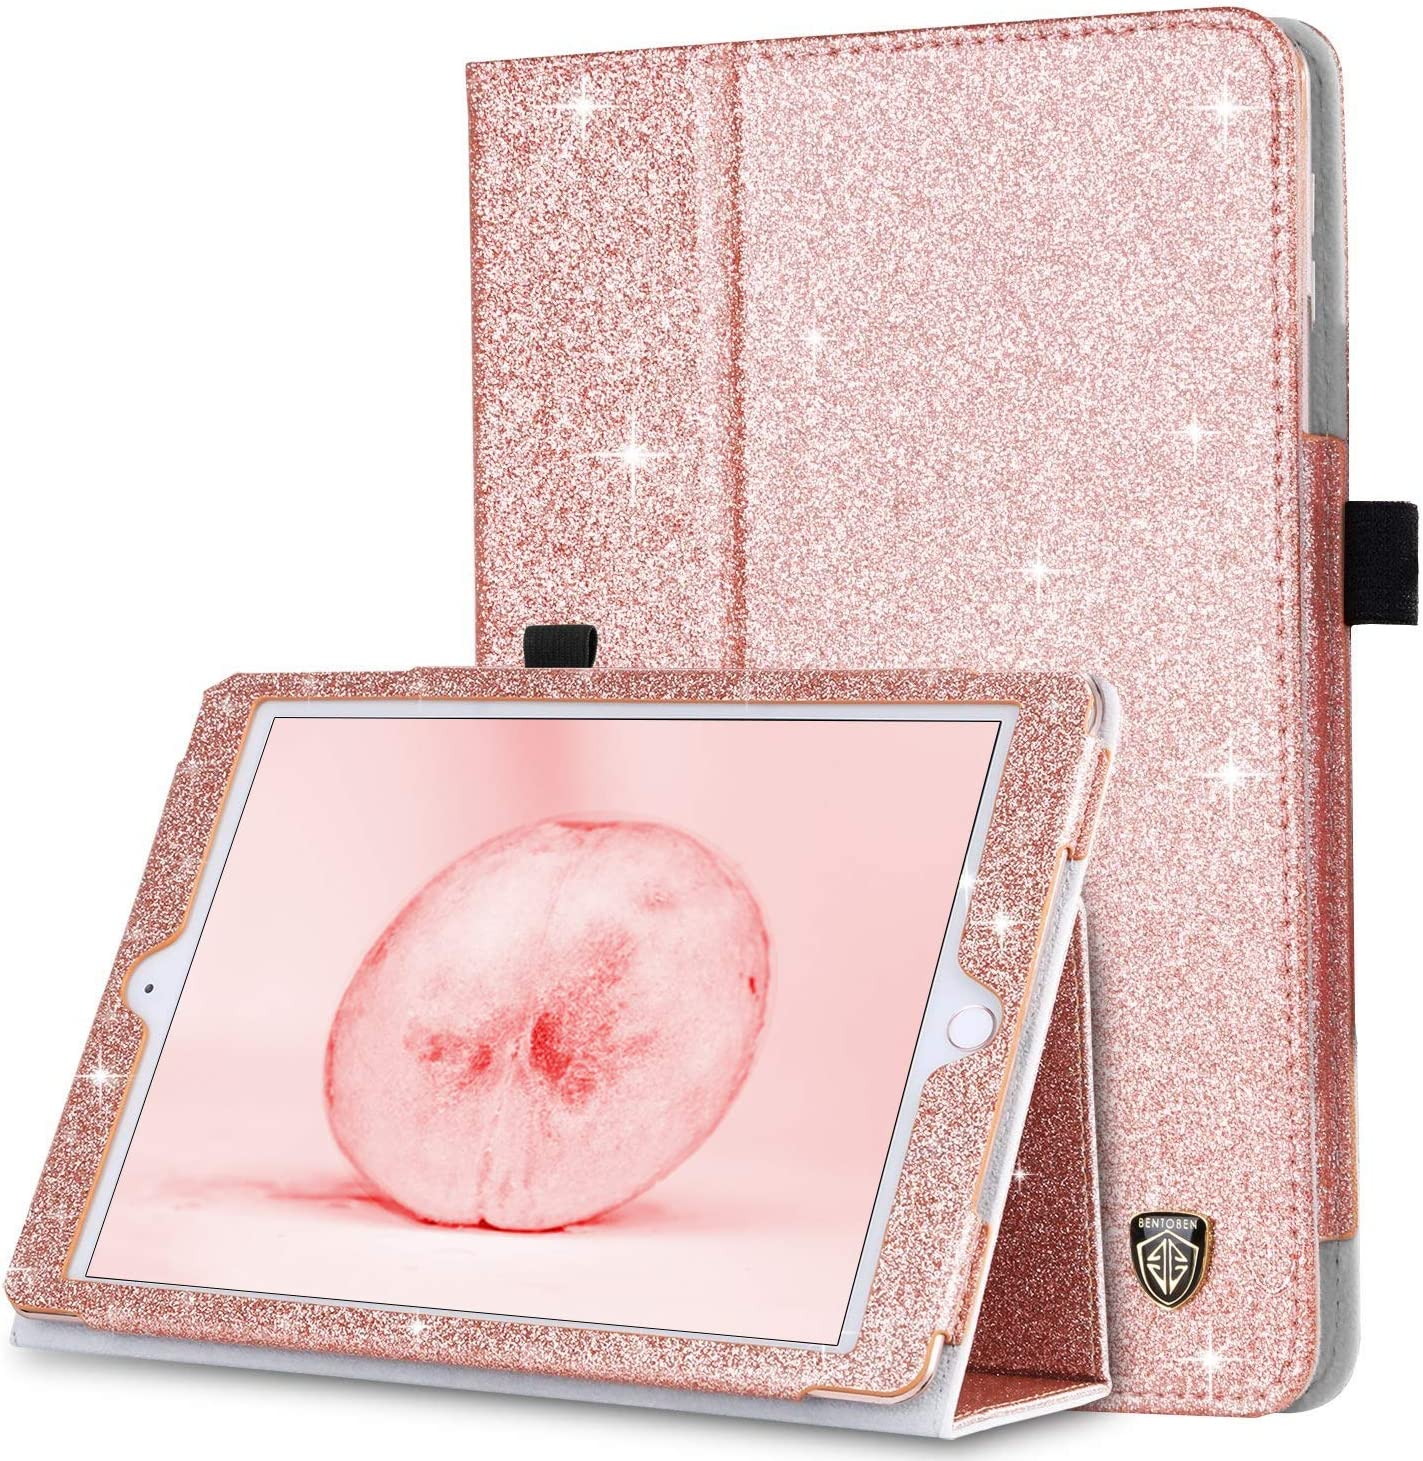 iPad Mini Case, iPad Mini 2 Case, iPad Mini 3 Case, BENTOBEN Glitter Sparkly Folio Folding Stand Cover with Holder & Auto Wake/Sleep Luxury Smart Case Without Stylus for iPad Mini 1/2/3, Rose Gold